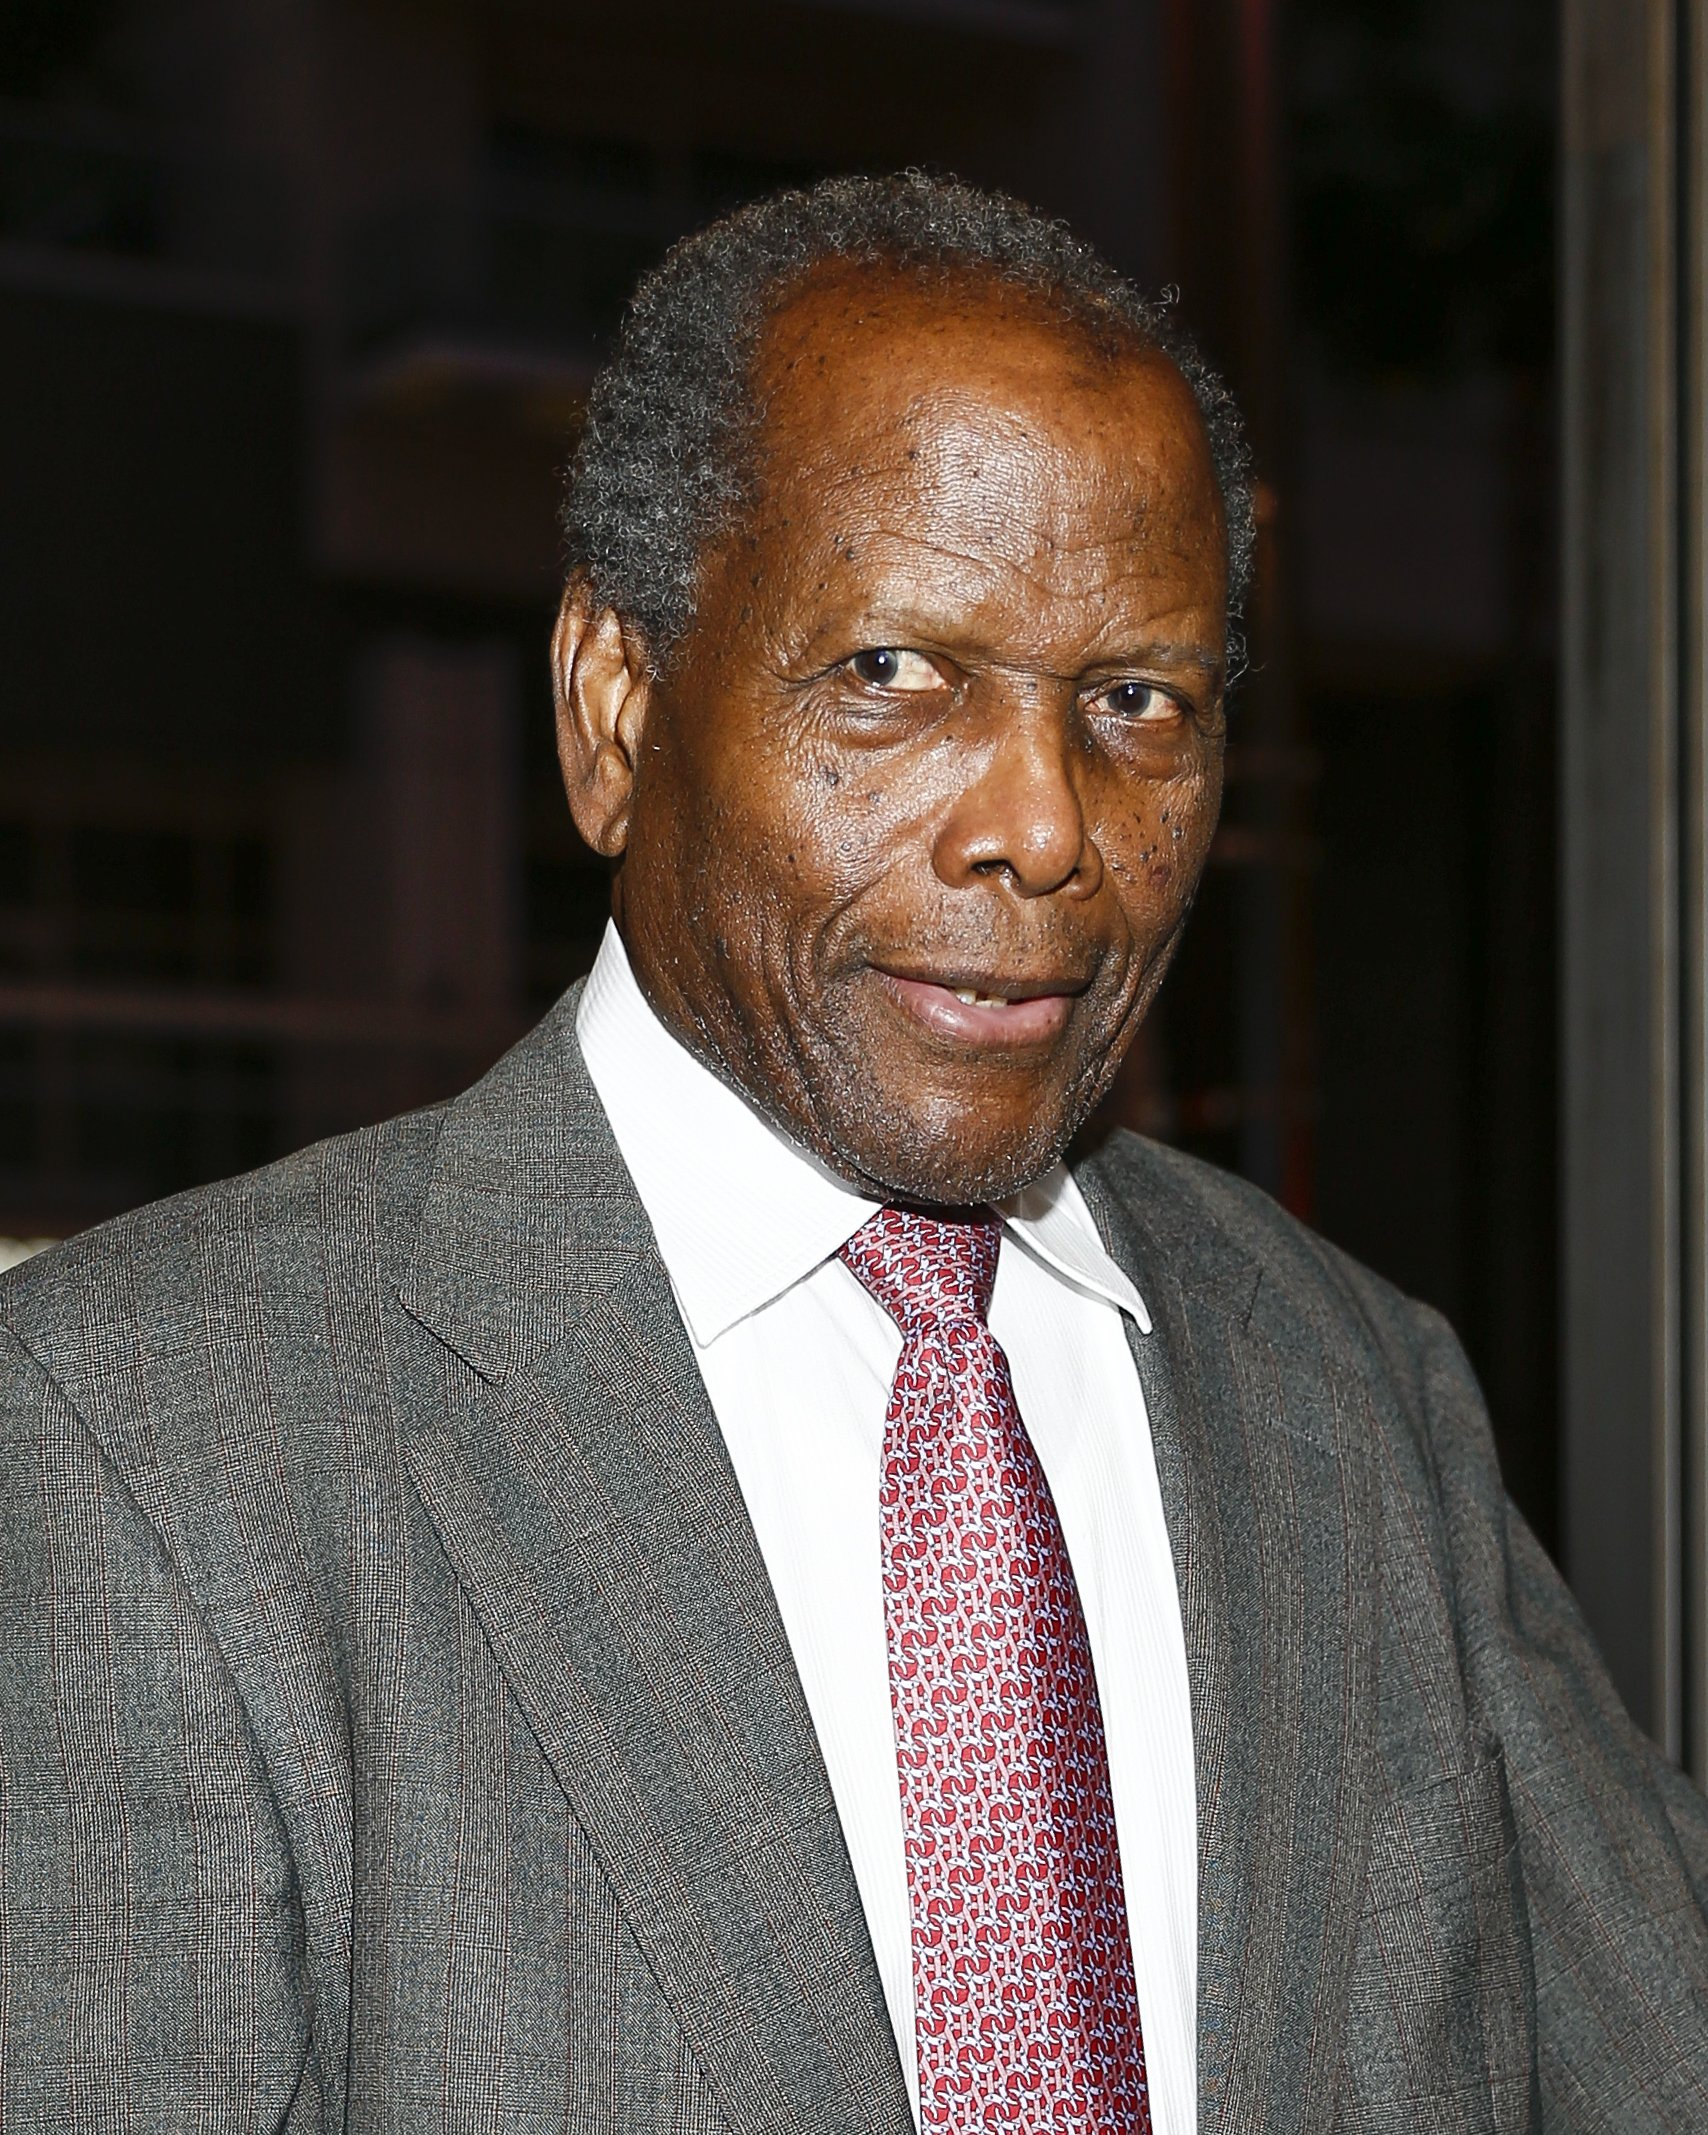 Sidney Poitier attends 'MOTOWN THE MUSICAL' at the Pantages Theatre on April 30, 2015. | Photo: GettyImages